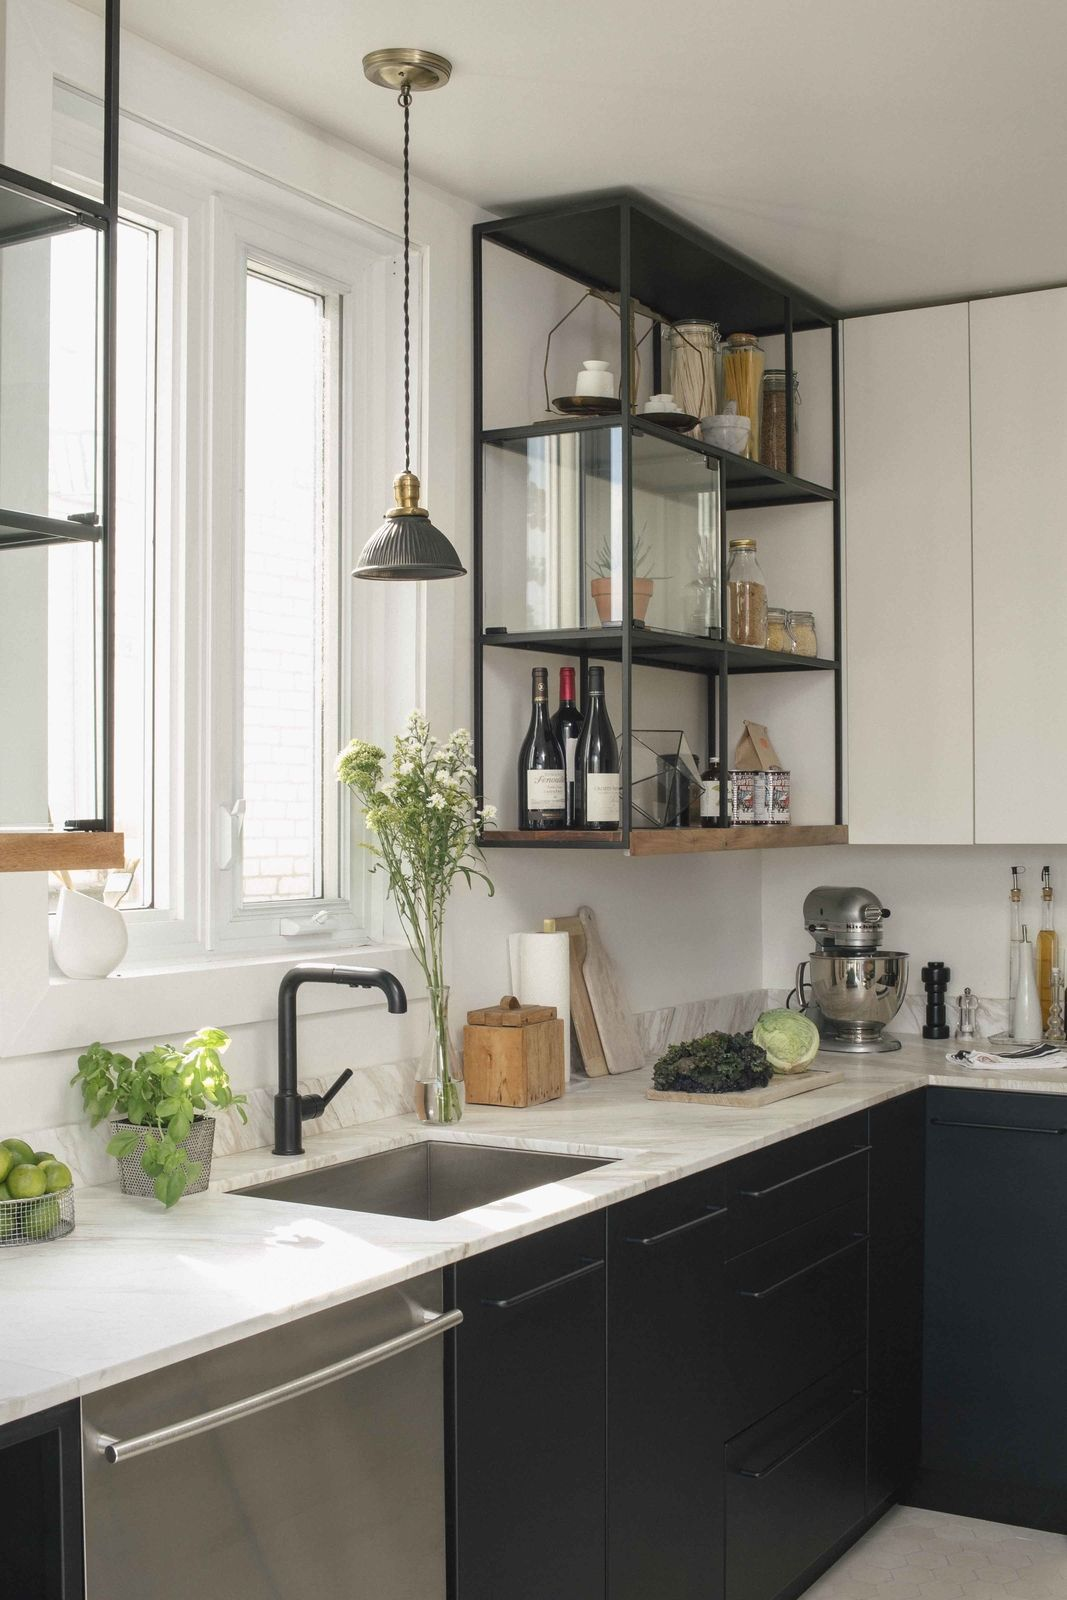 Inspiring kitchens you wonut believe are ikea kitchens danish